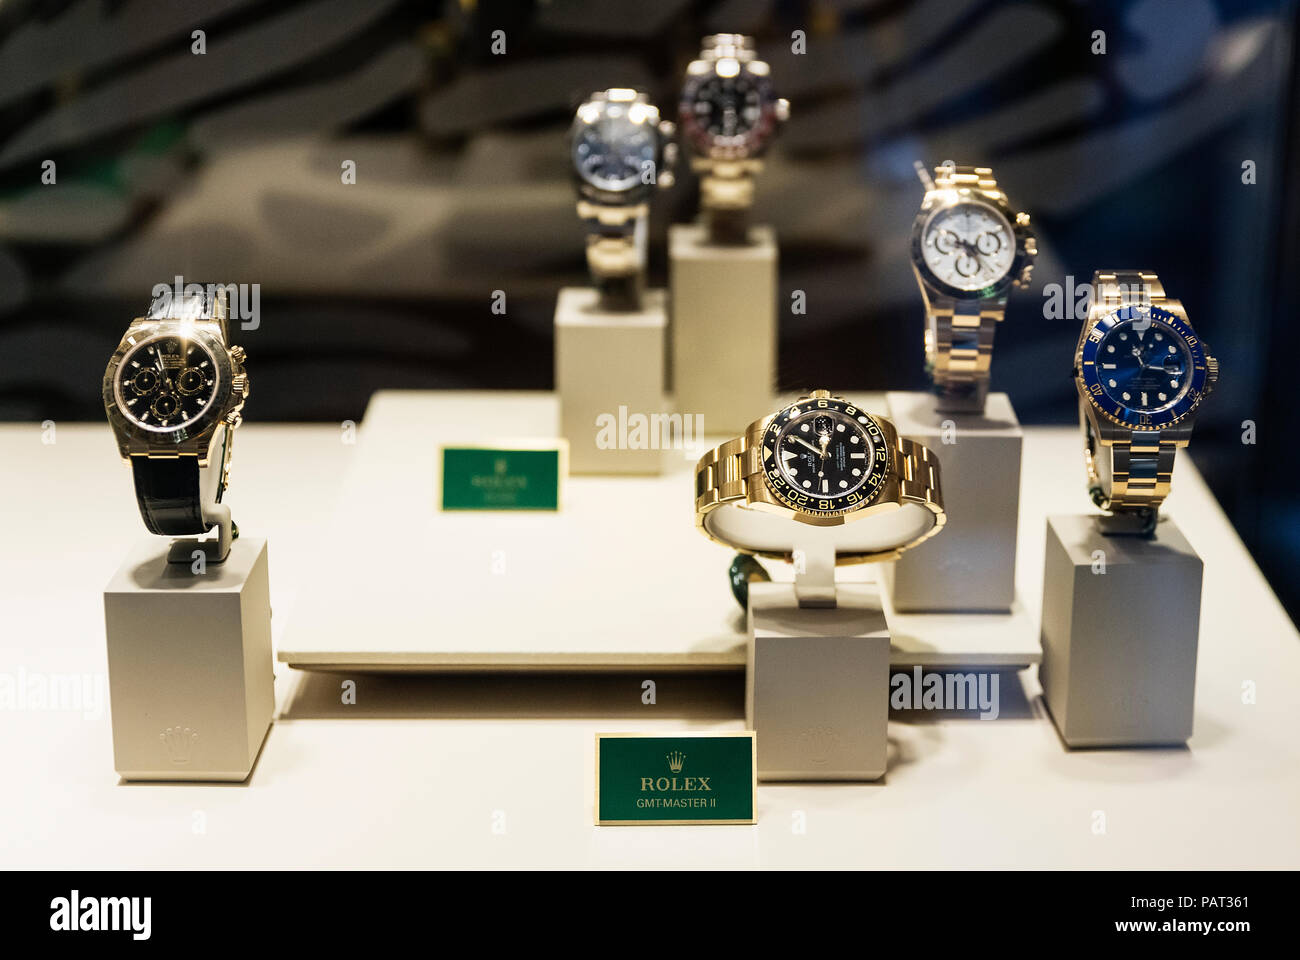 Rolex retail store display. - Stock Image